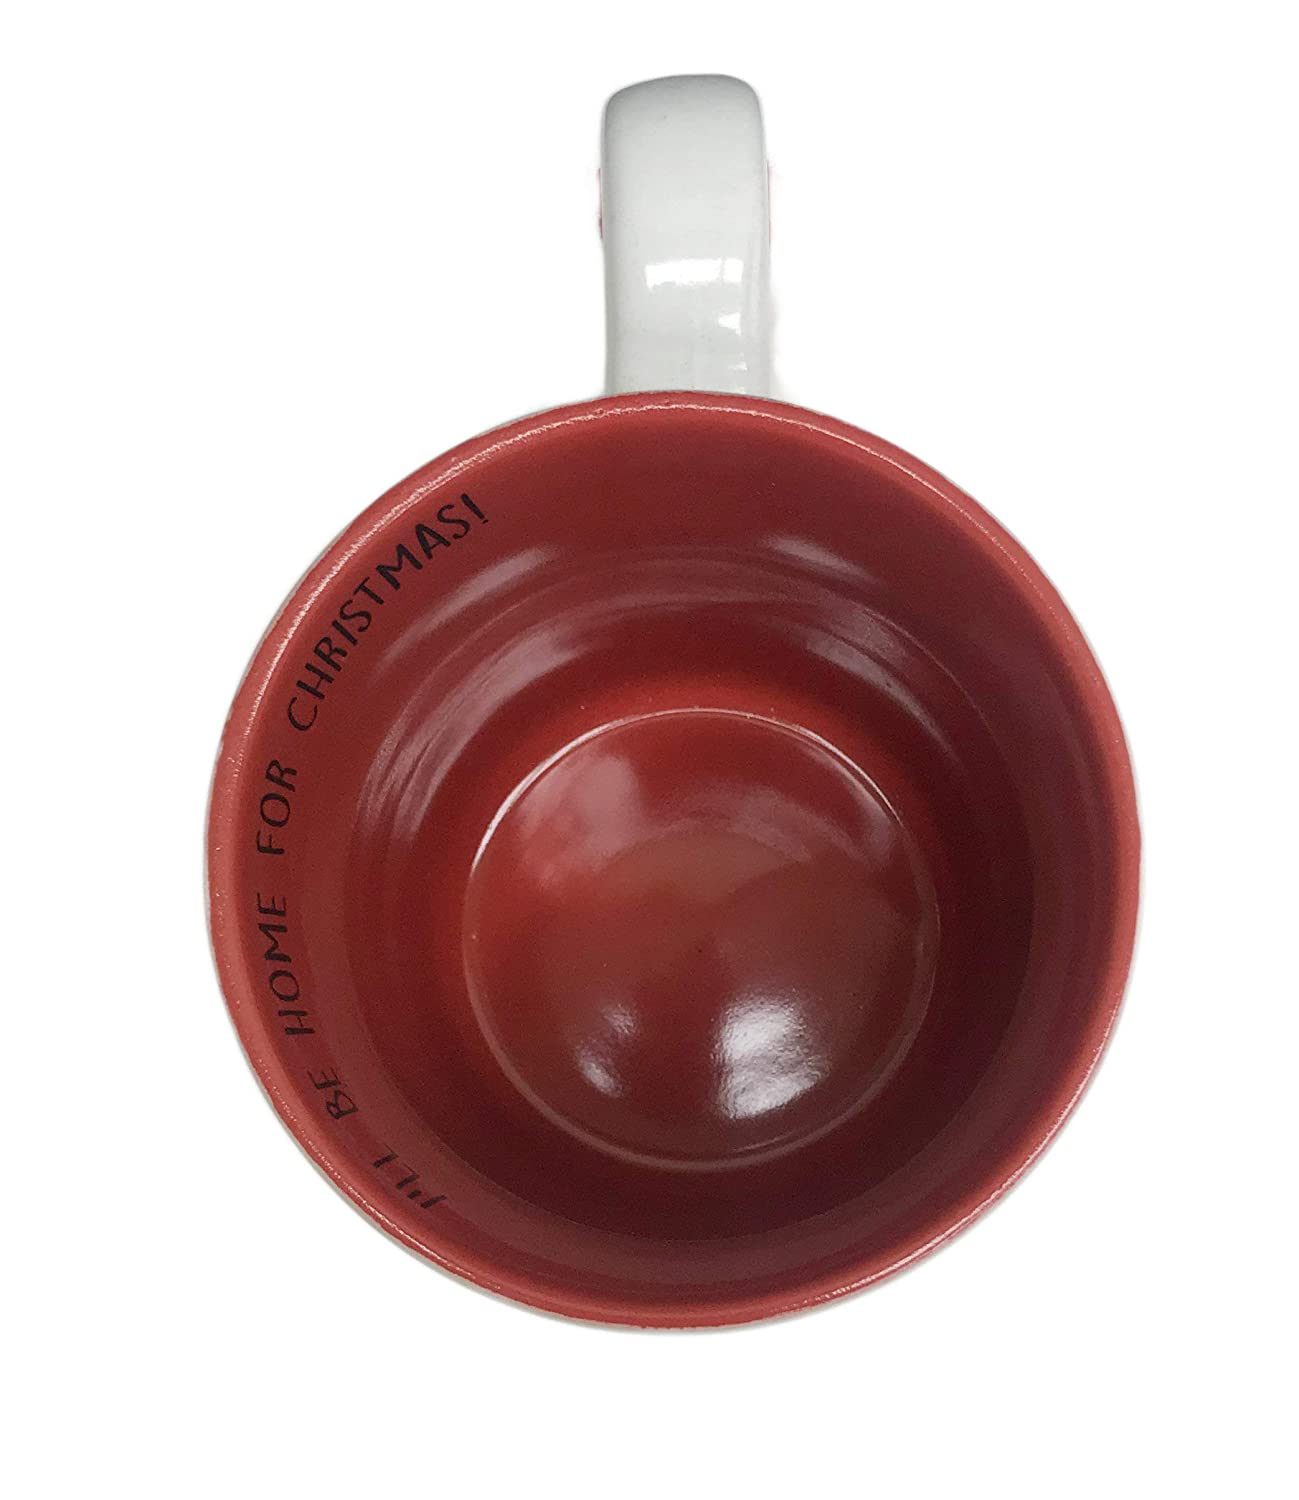 Ill Be Home For Christmas Red Car Carrying Holiday Presents Novelty Ceramic 16 oz Holiday Coffee Tea Coco Drink Gift Mug